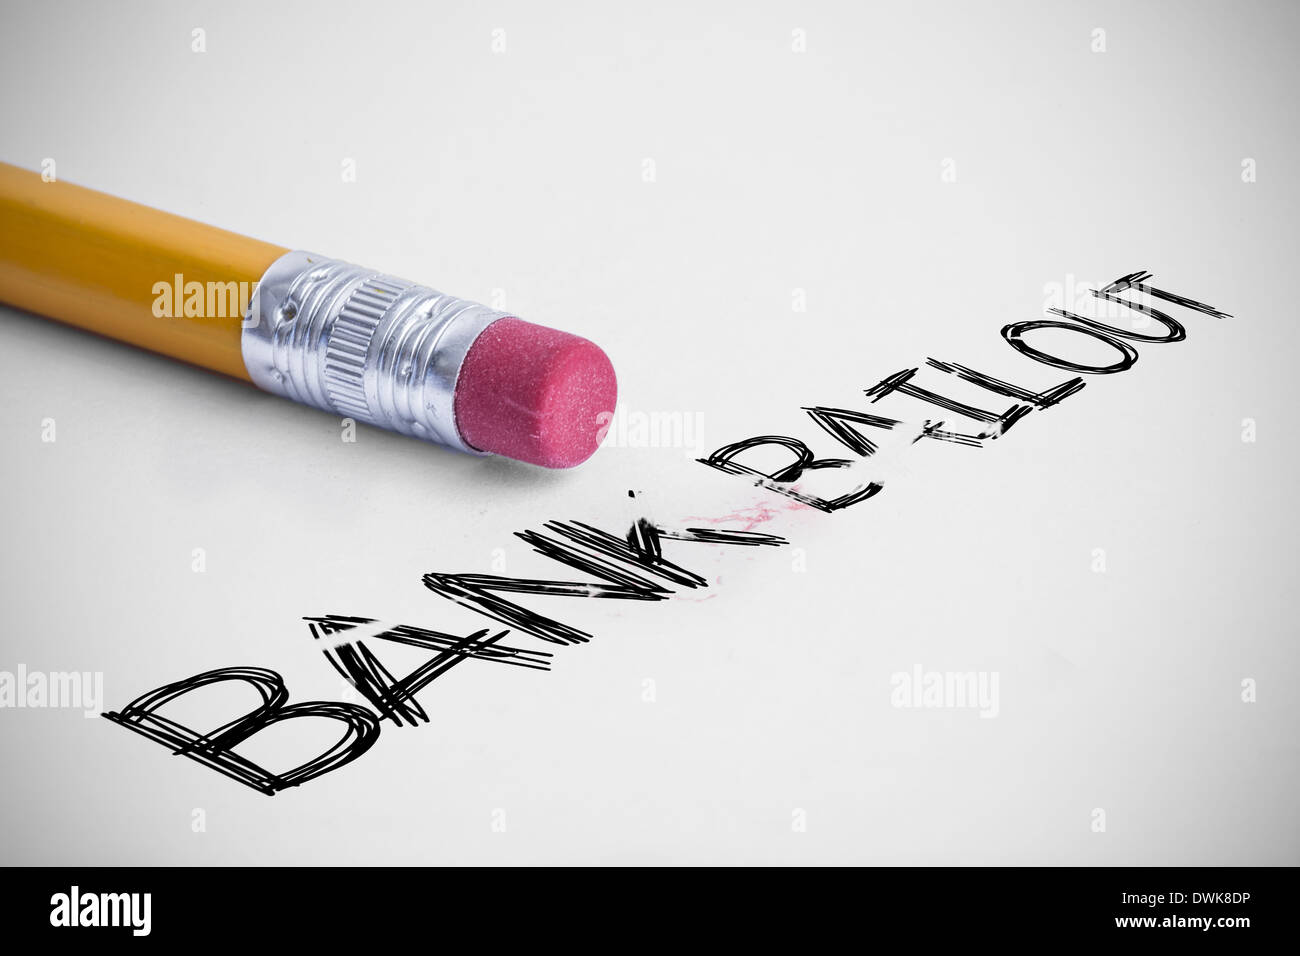 Bank bailout against pencil with an eraser - Stock Image